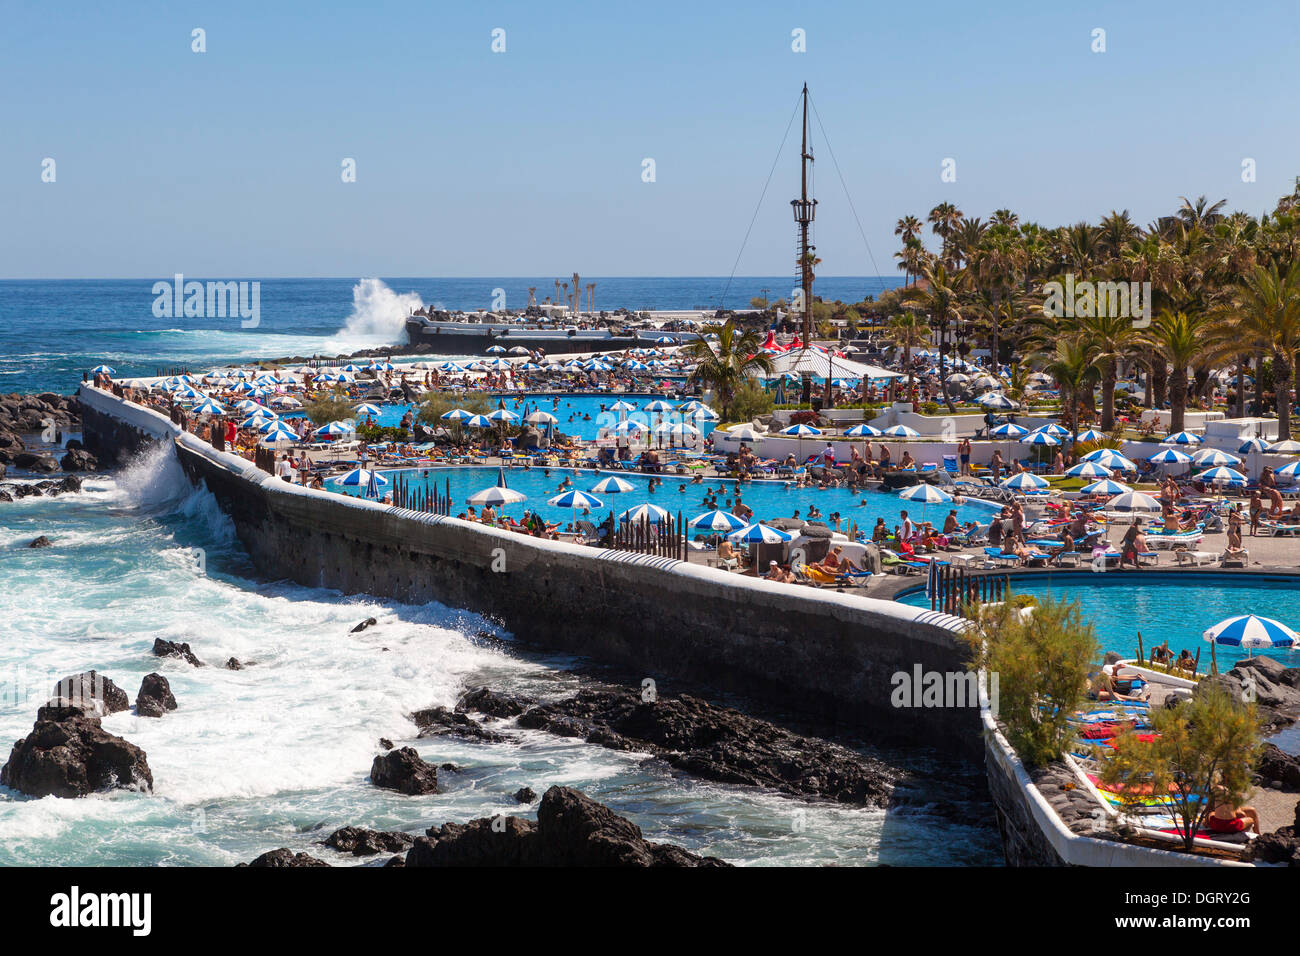 Playa de martianez designed by cesar manrique puerto de la cruz stock photo 61991736 alamy - Hotel san telmo puerto de la cruz tenerife ...